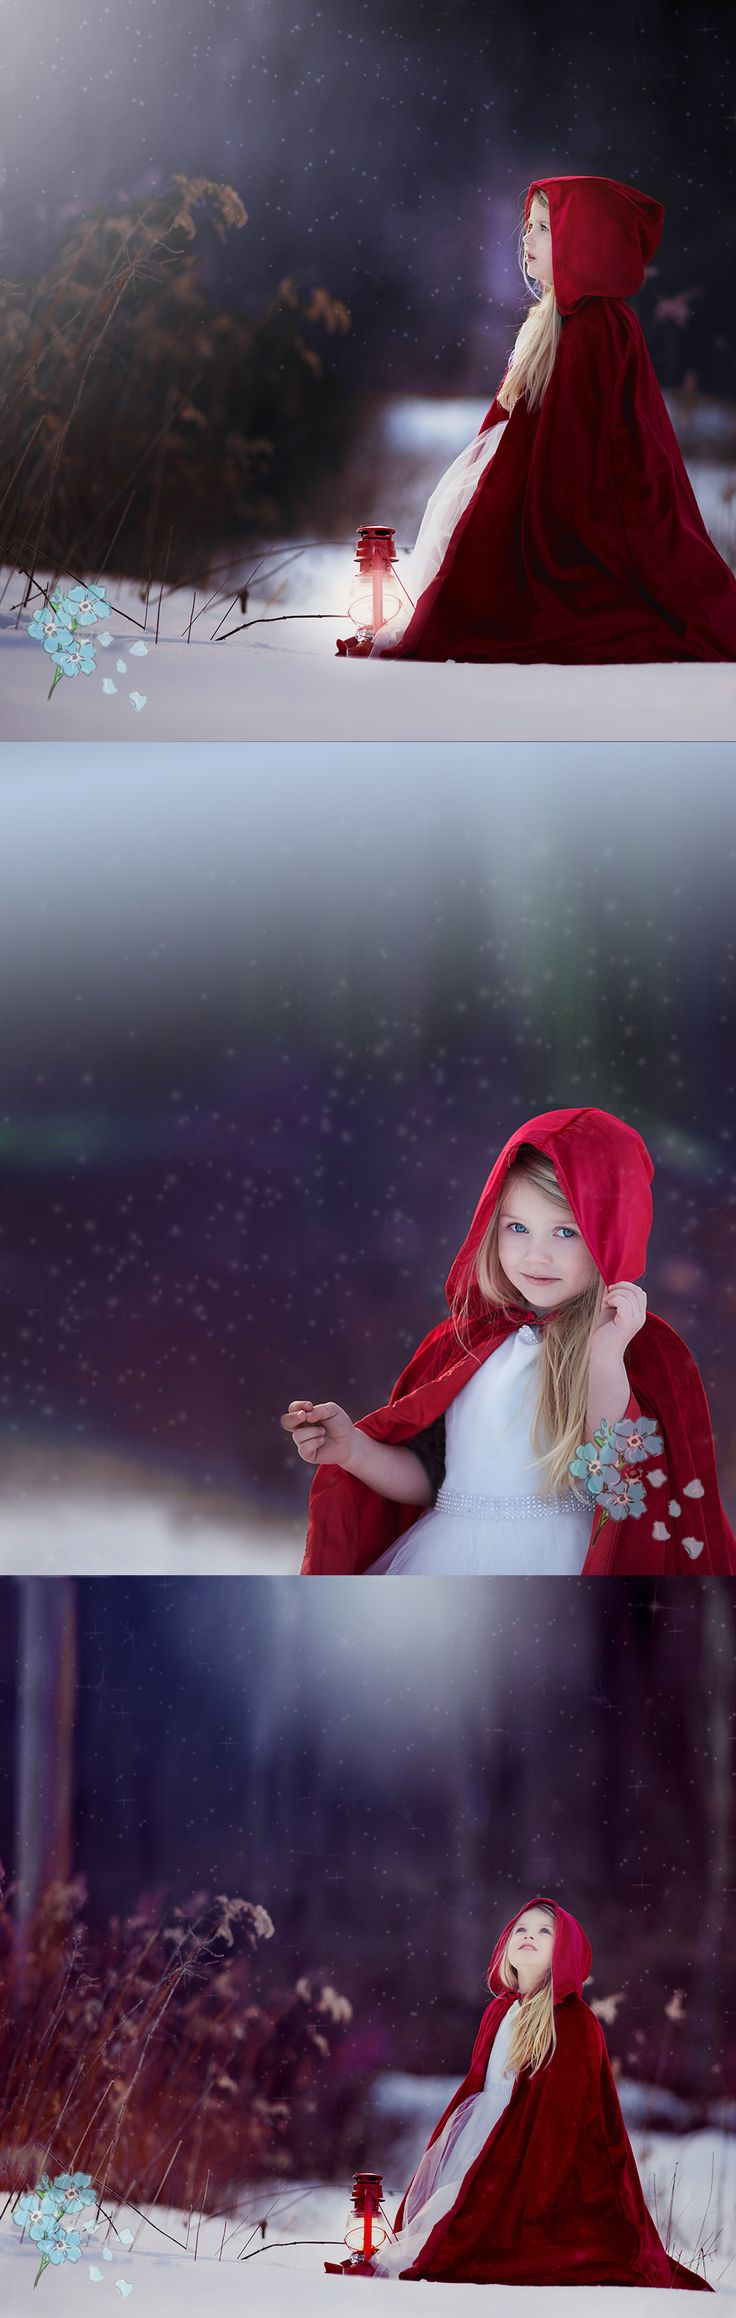 Little Red Riding Hood   A Forget Me Not Moment Fine art newborn, baby,  children's and family photography studio located in Greensboro, North Carolina and Poconos area of Pennsylvania